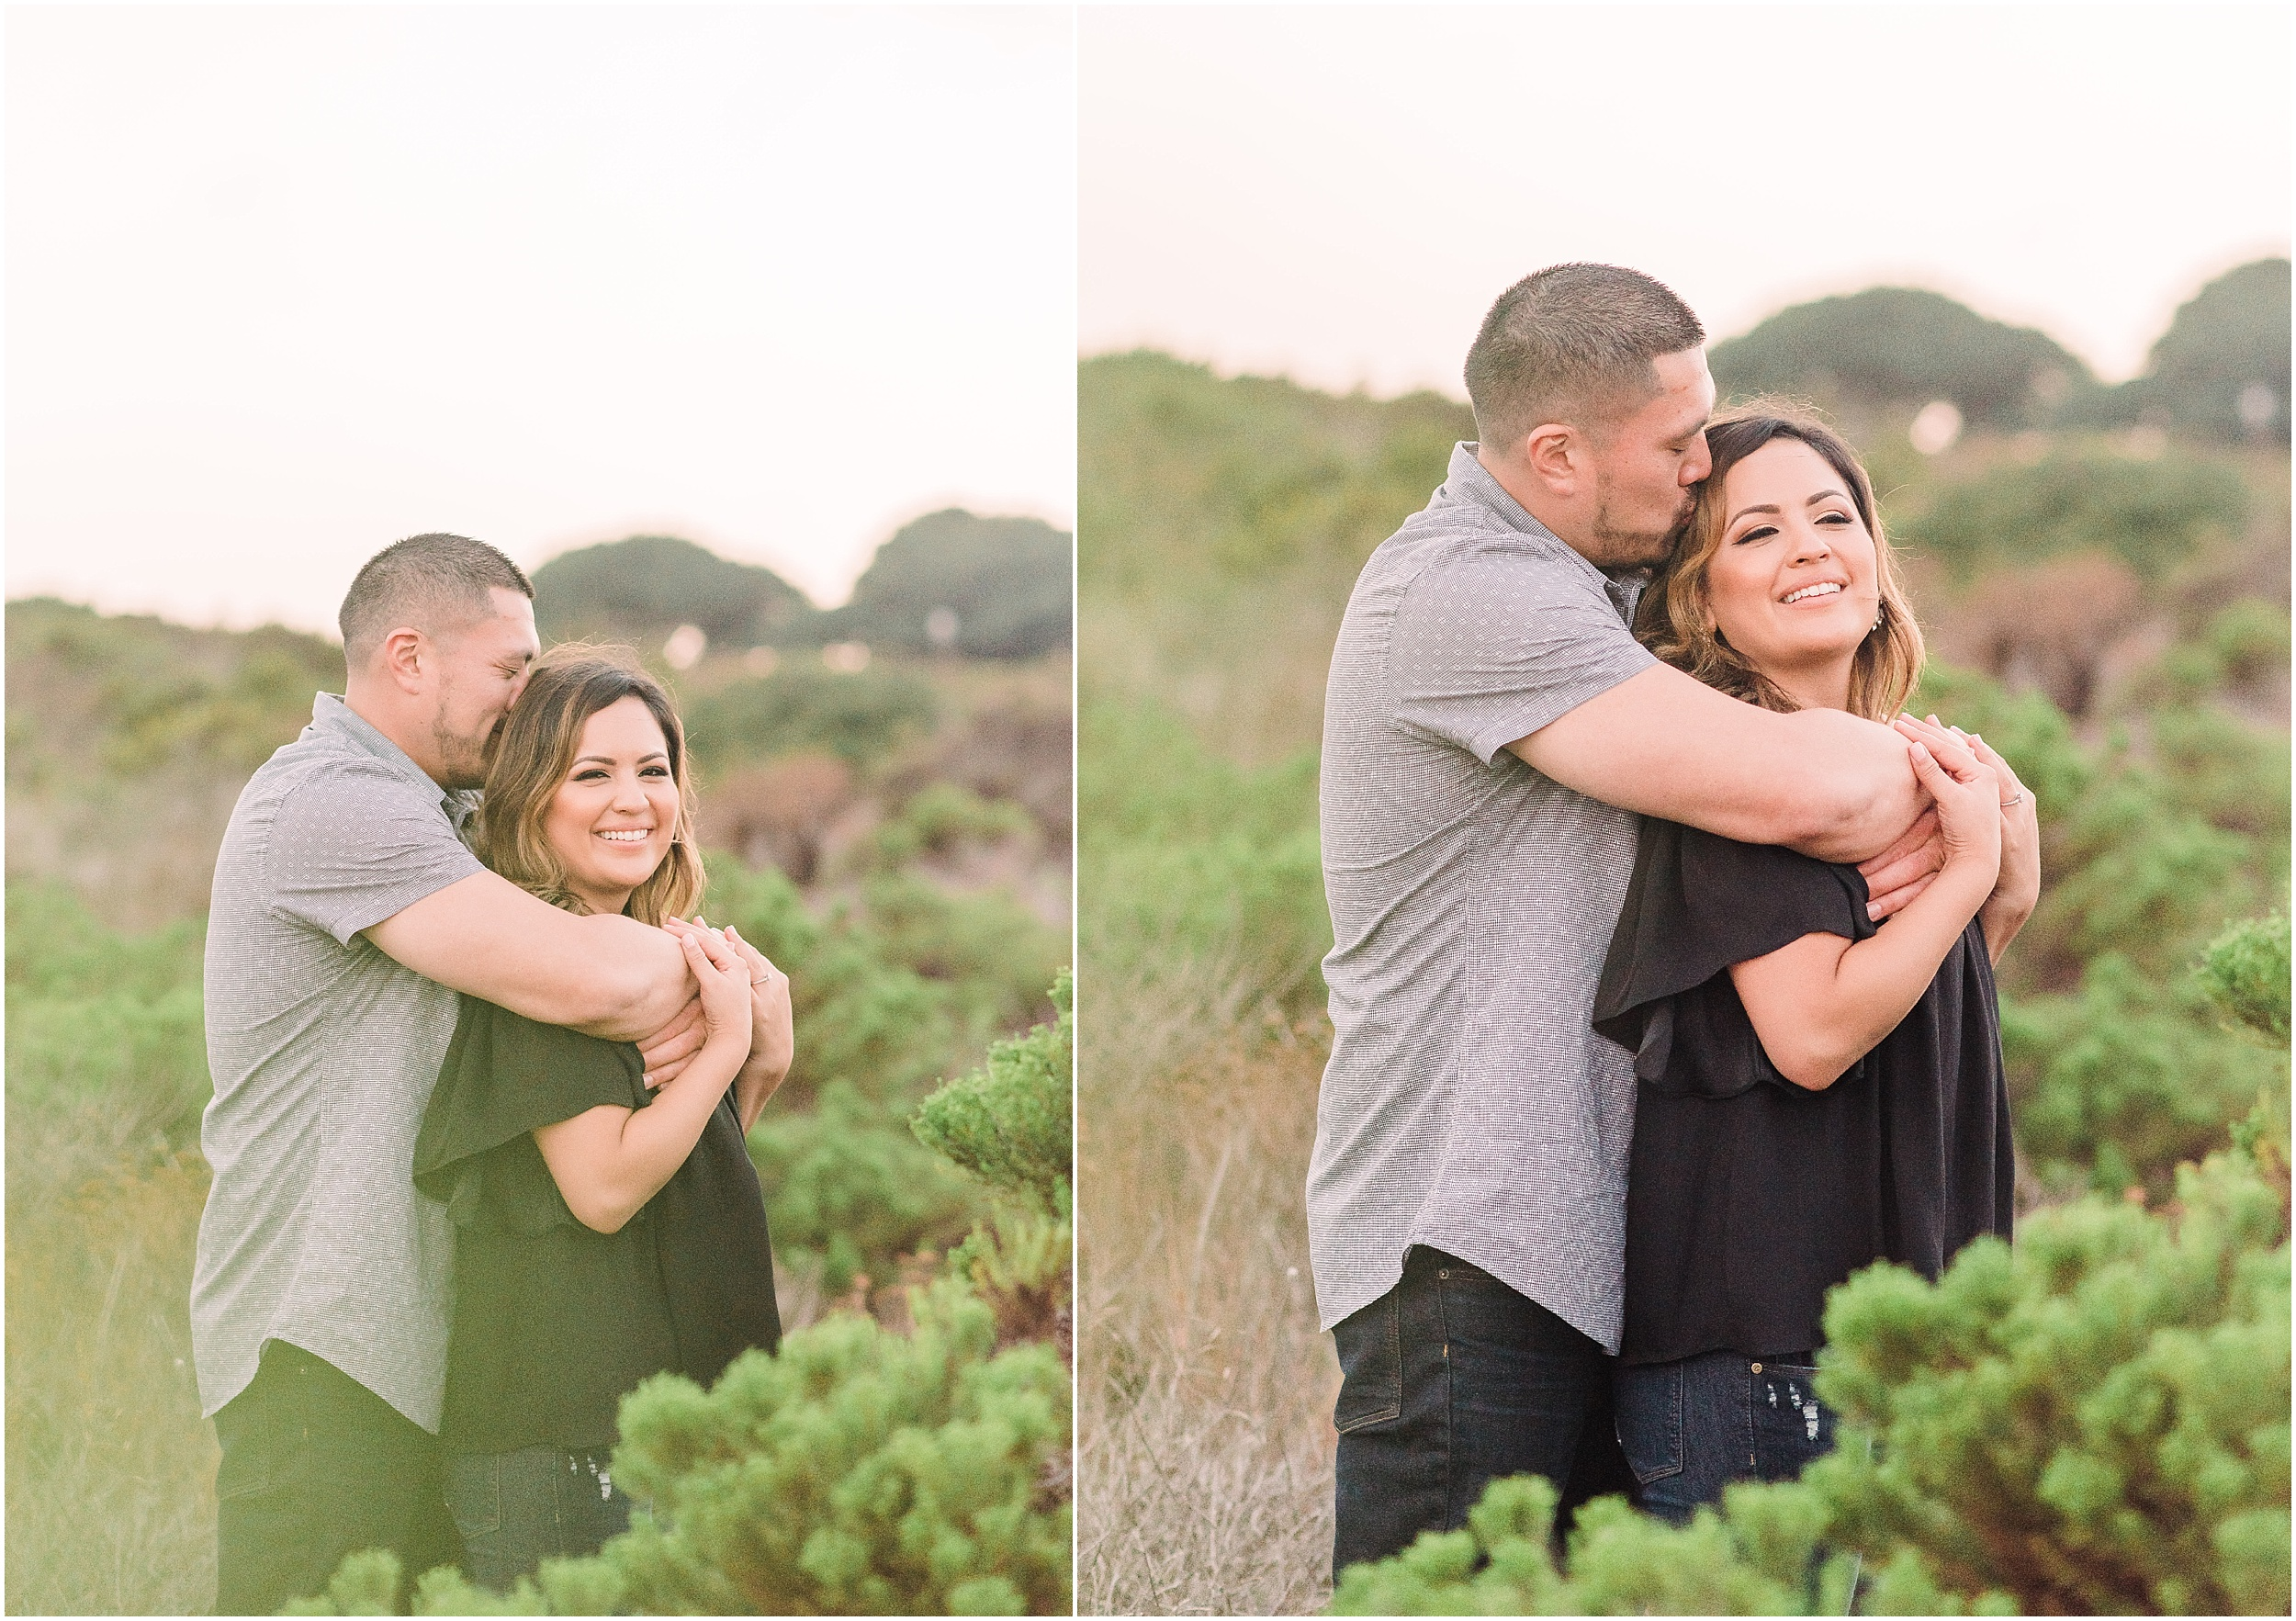 Engagement-Session-in-Malibu-California-Valeria-Gonzalez-Photography-Wedding-and-Portrait-Photographer-Richmond-Virginia-Ventura-California_0018.jpg